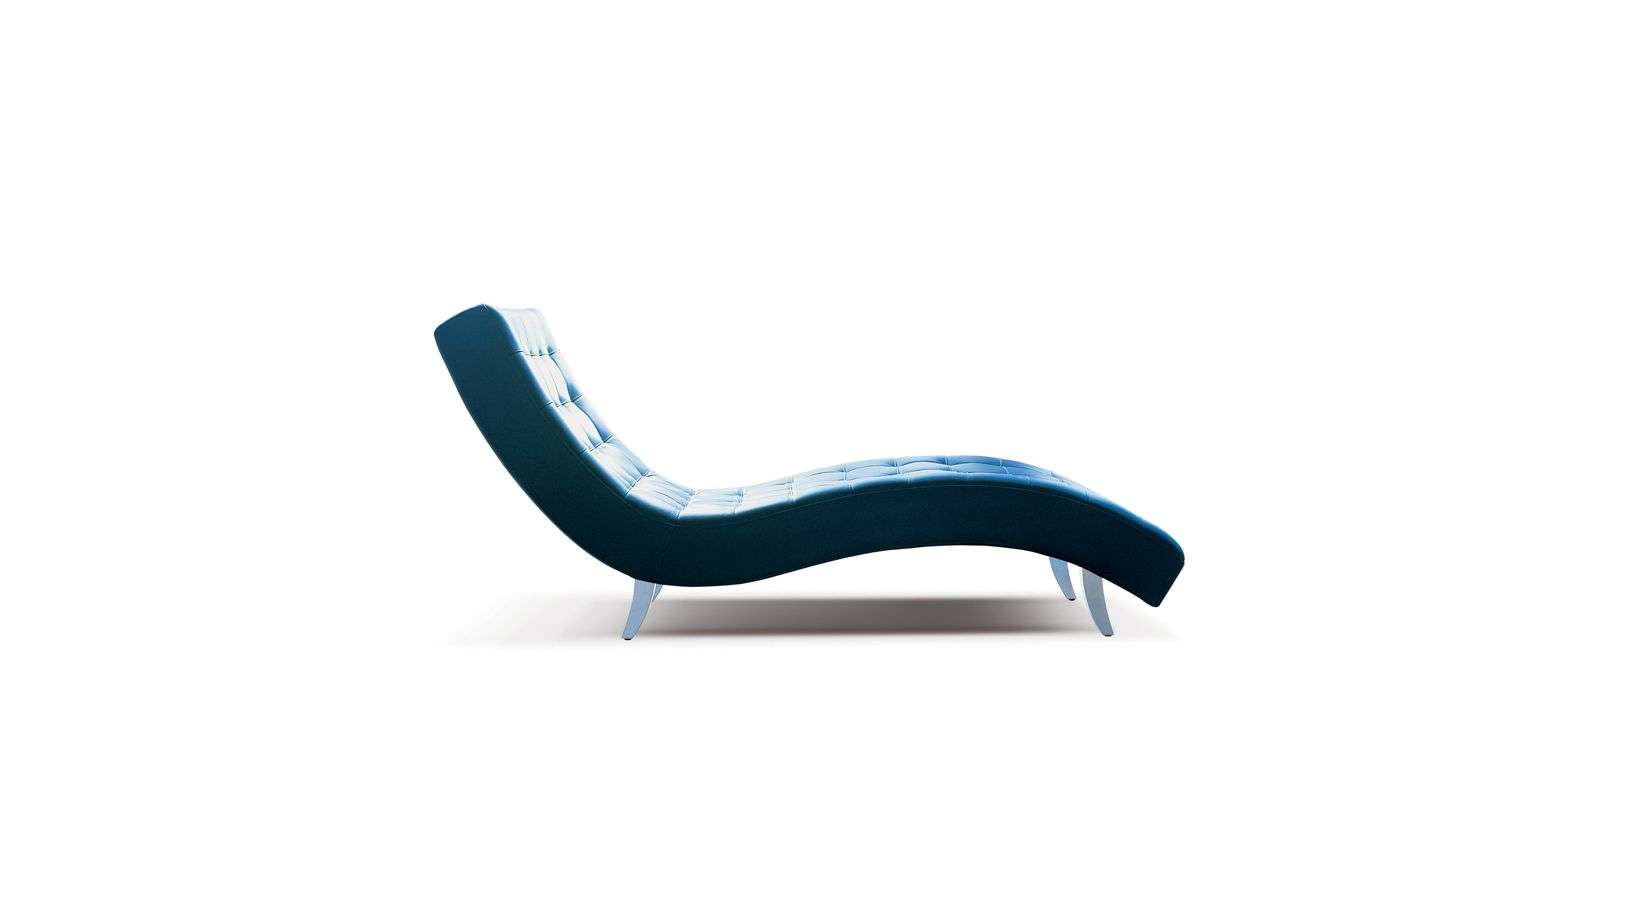 Dolce lounge chair roche bobois for Chaise longue en rotin ancienne